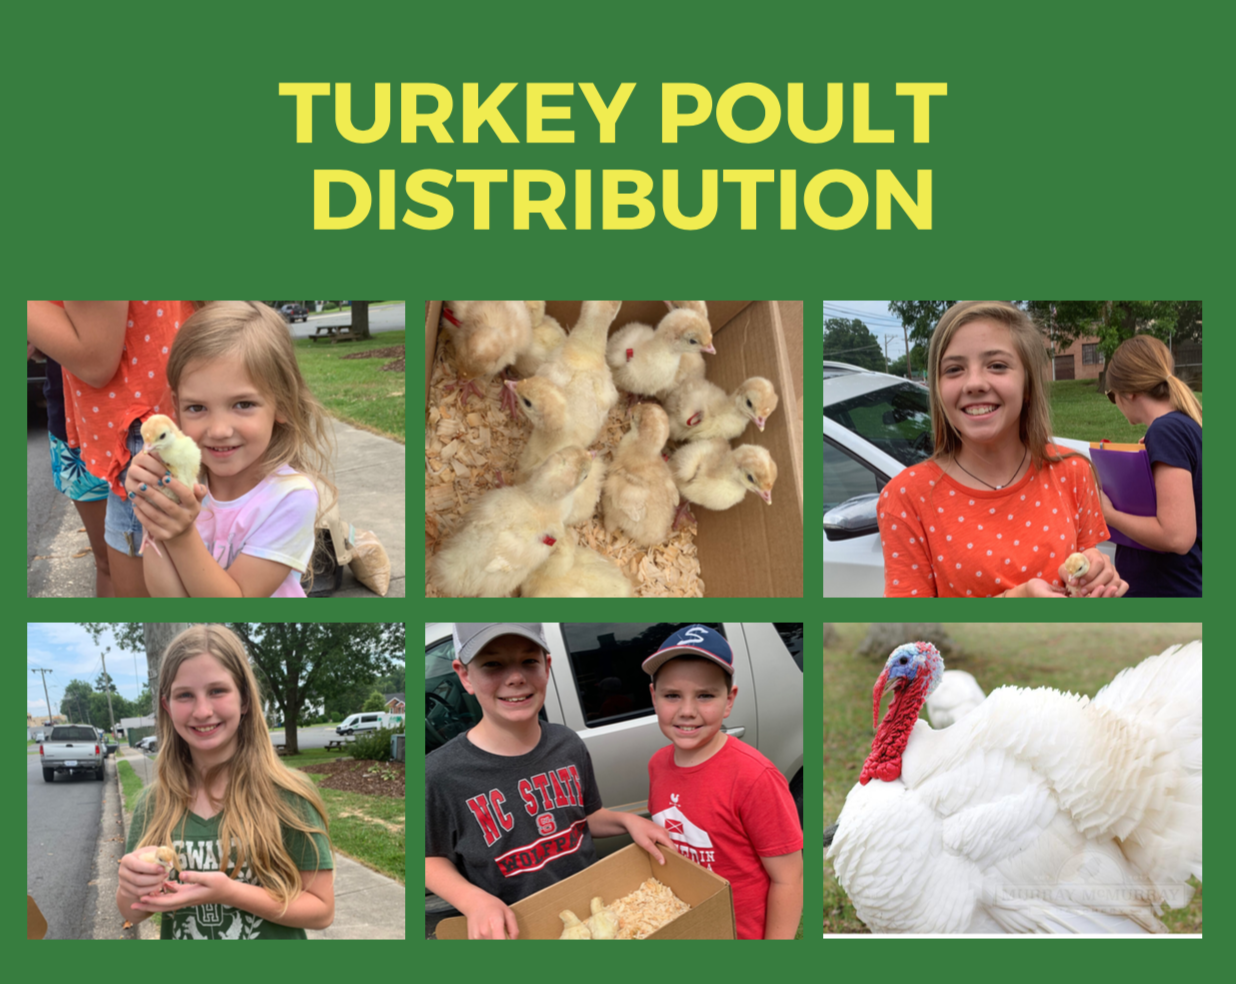 Turkey Poult Distribution